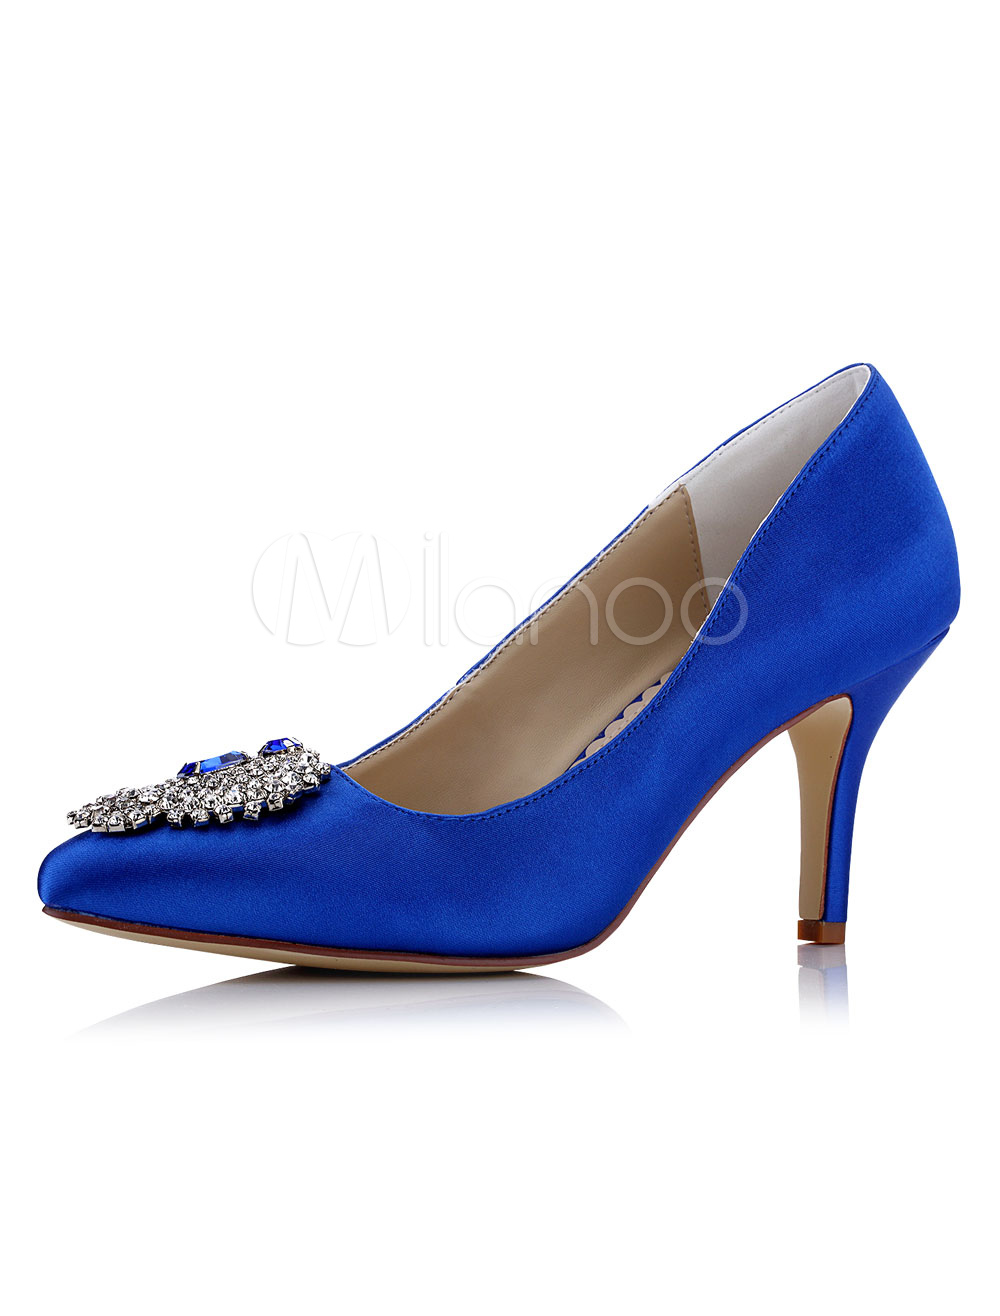 Buy Blue Wedding Shoes Satin High Heel Pointed Toe Rhinestones Beaded Slip On Bridal Pumps for $56.99 in Milanoo store